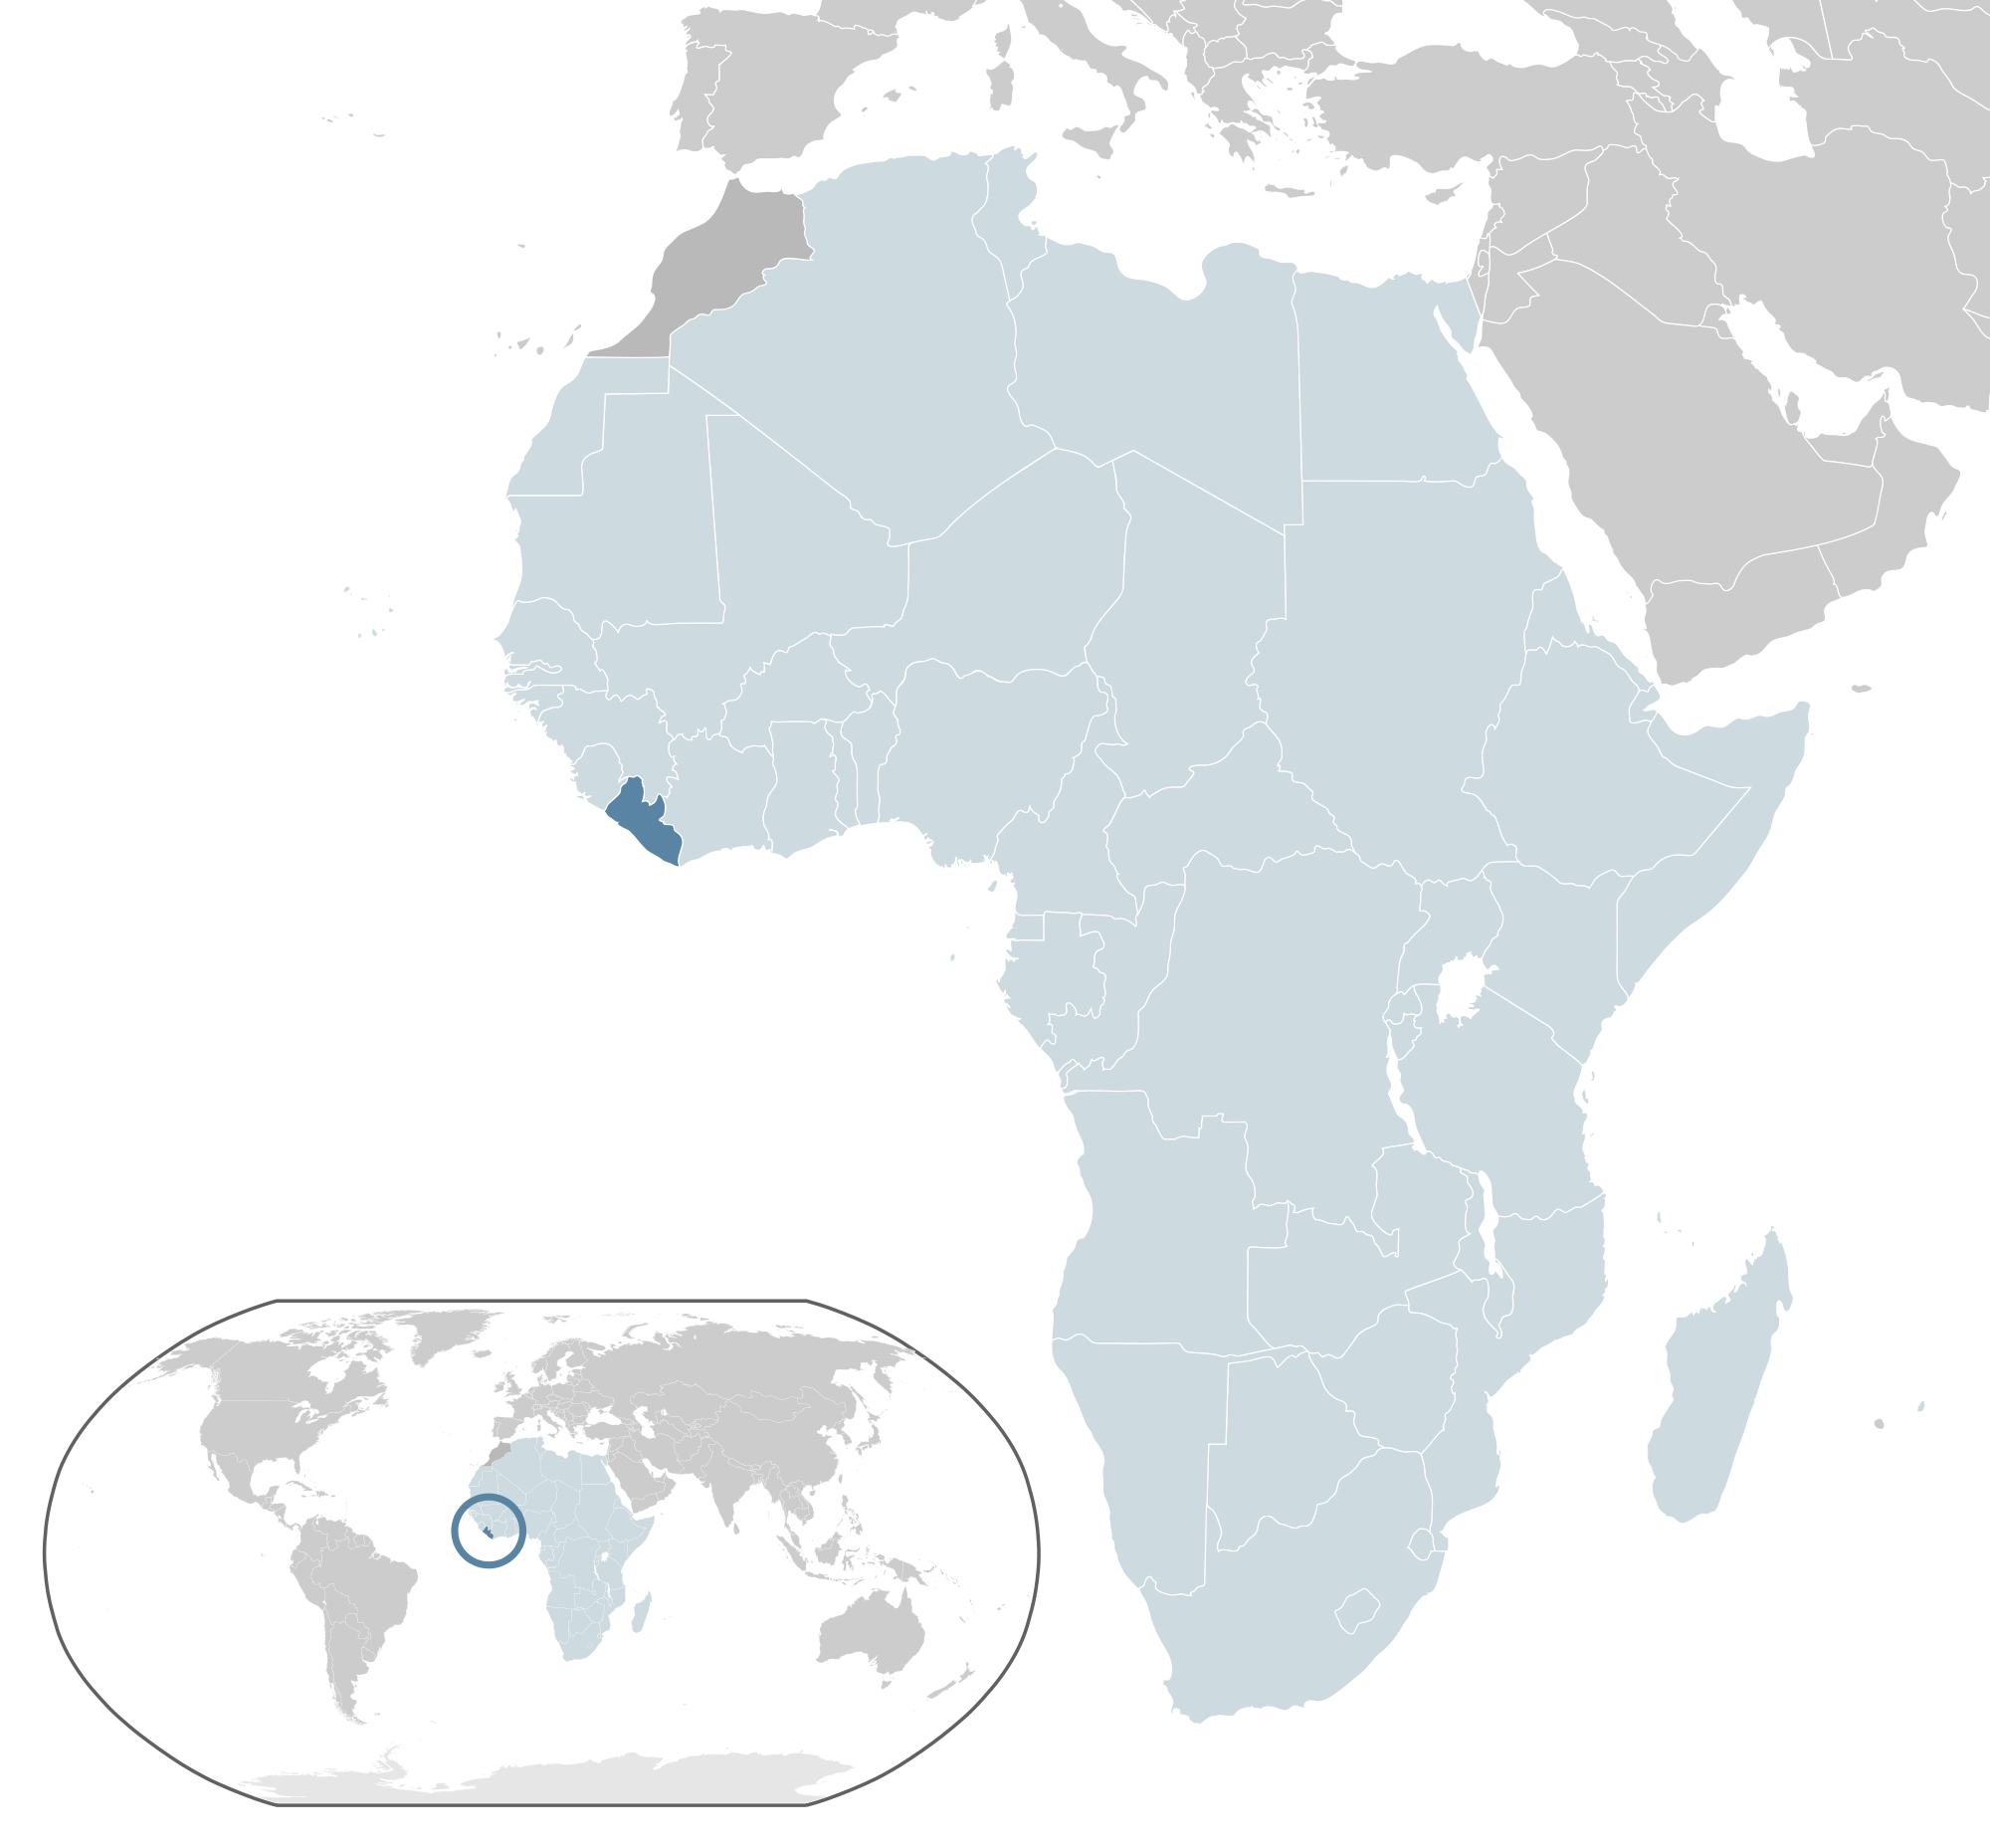 Location Of The Liberia In The World Map